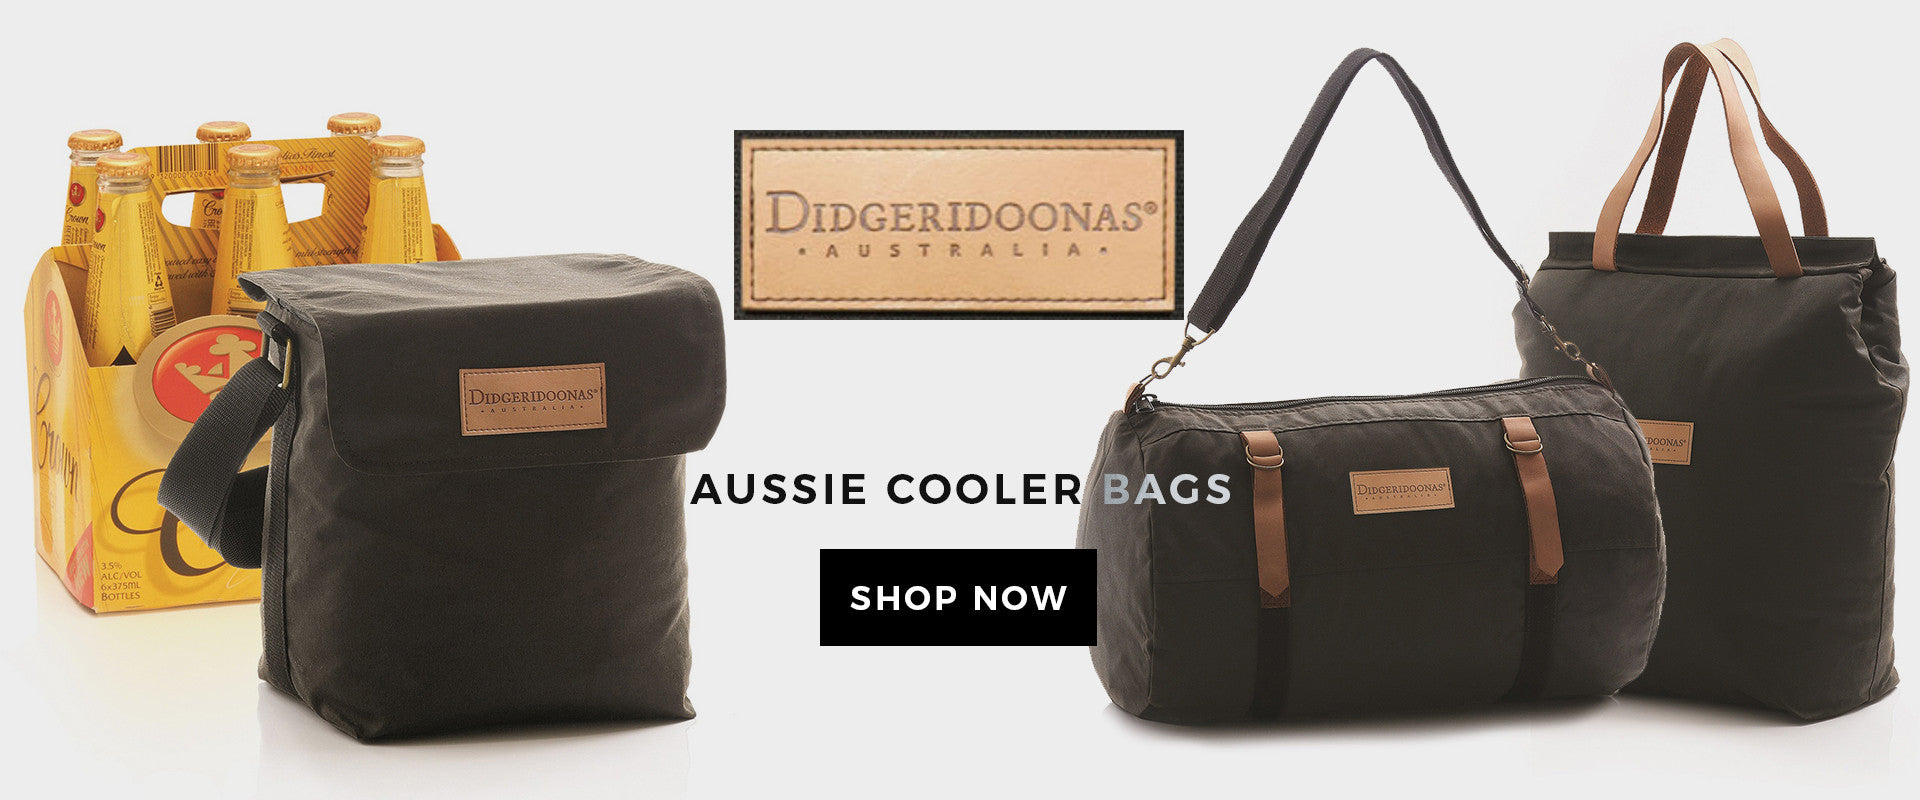 didgeridoonas australian insulated cooler bags